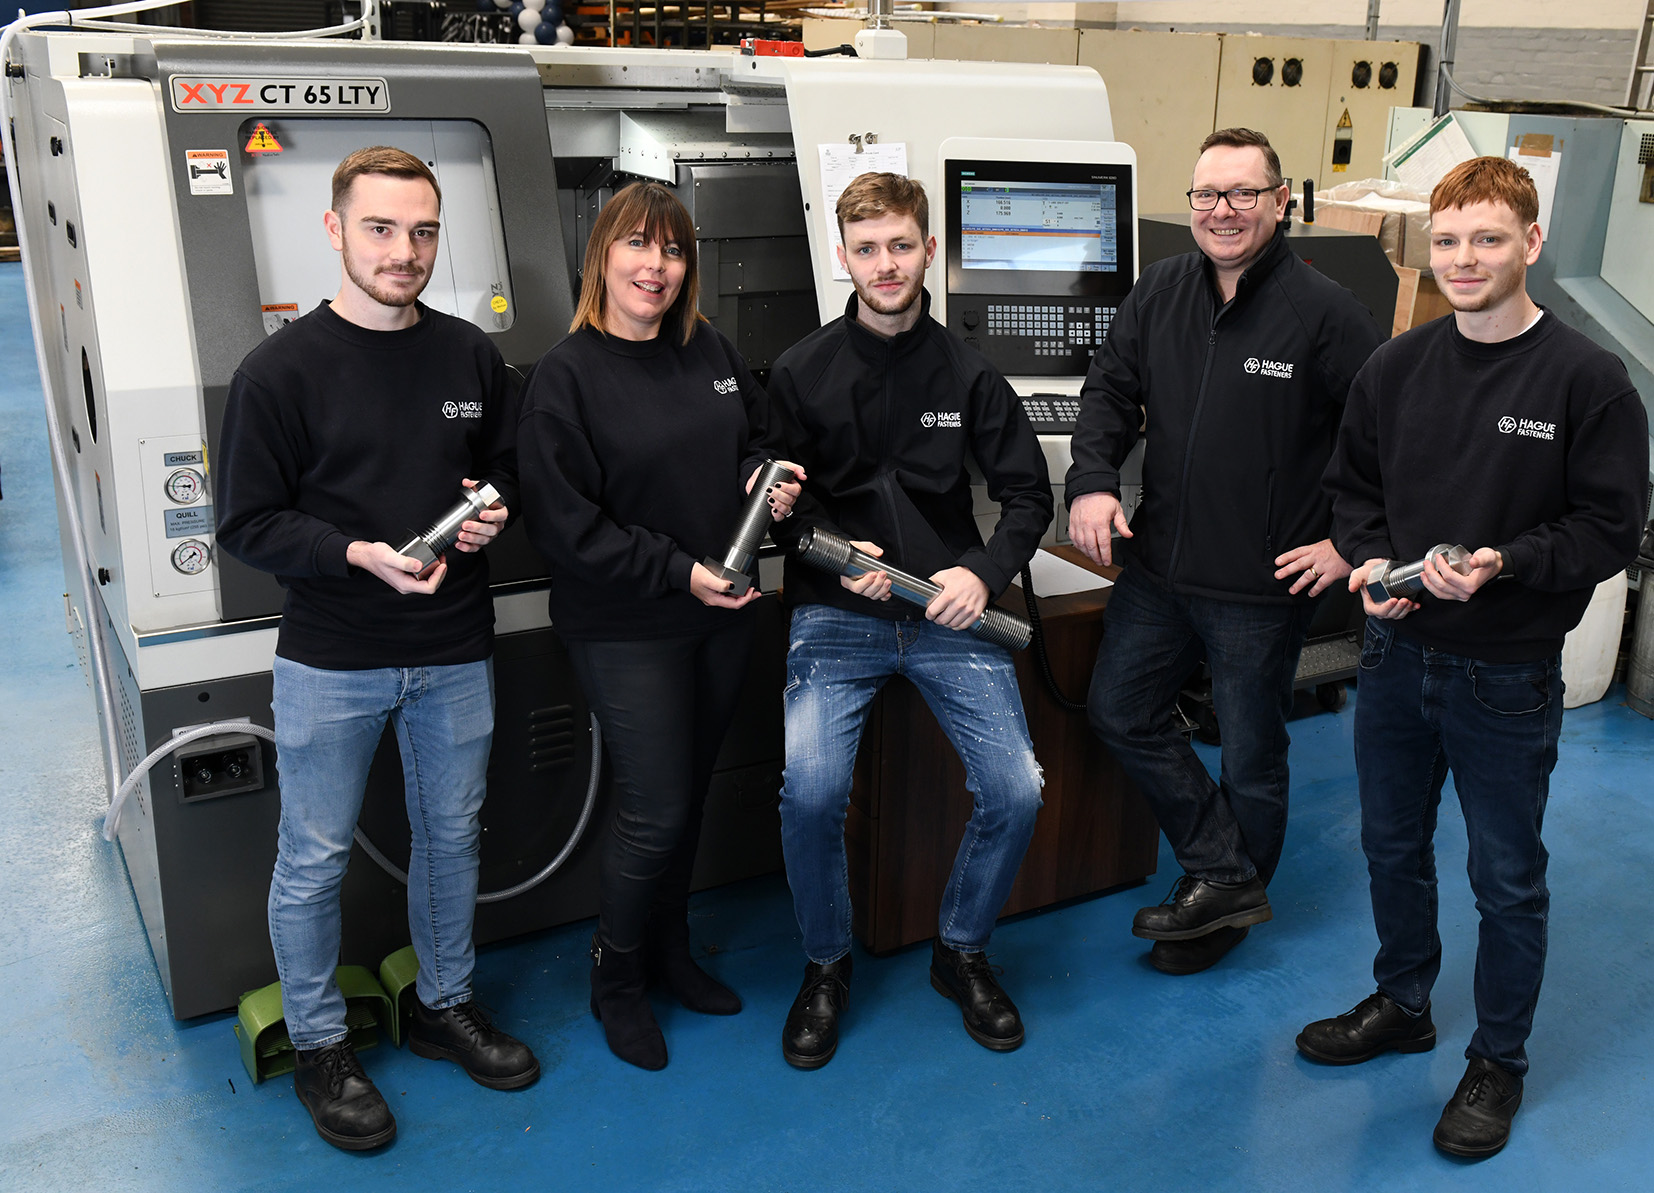 Hague Fasteners Family (L2). Image courtesy of Hague Fasteners.